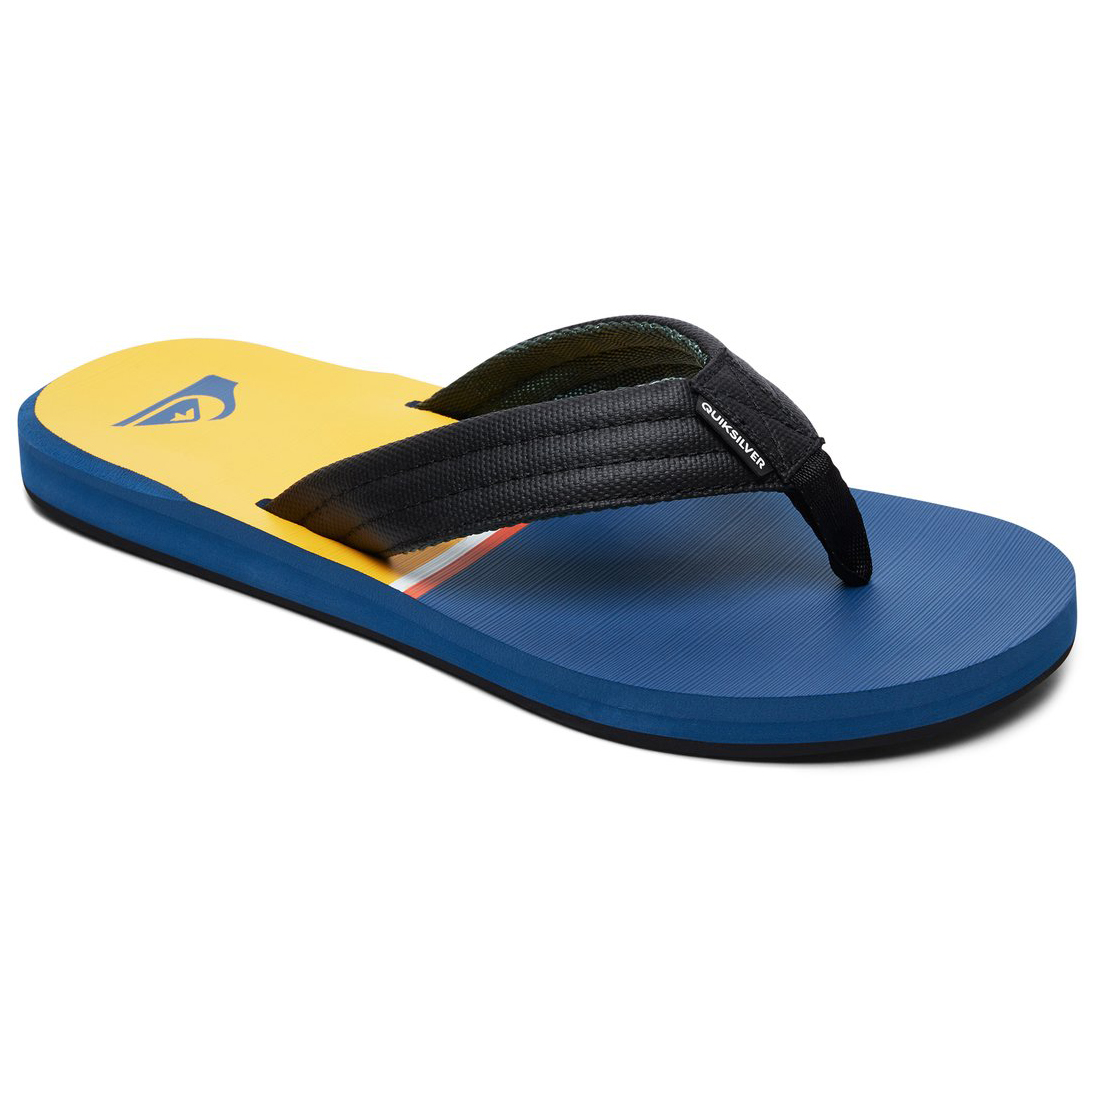 Quiksilver Men's Carver Sandals - Blue, 10